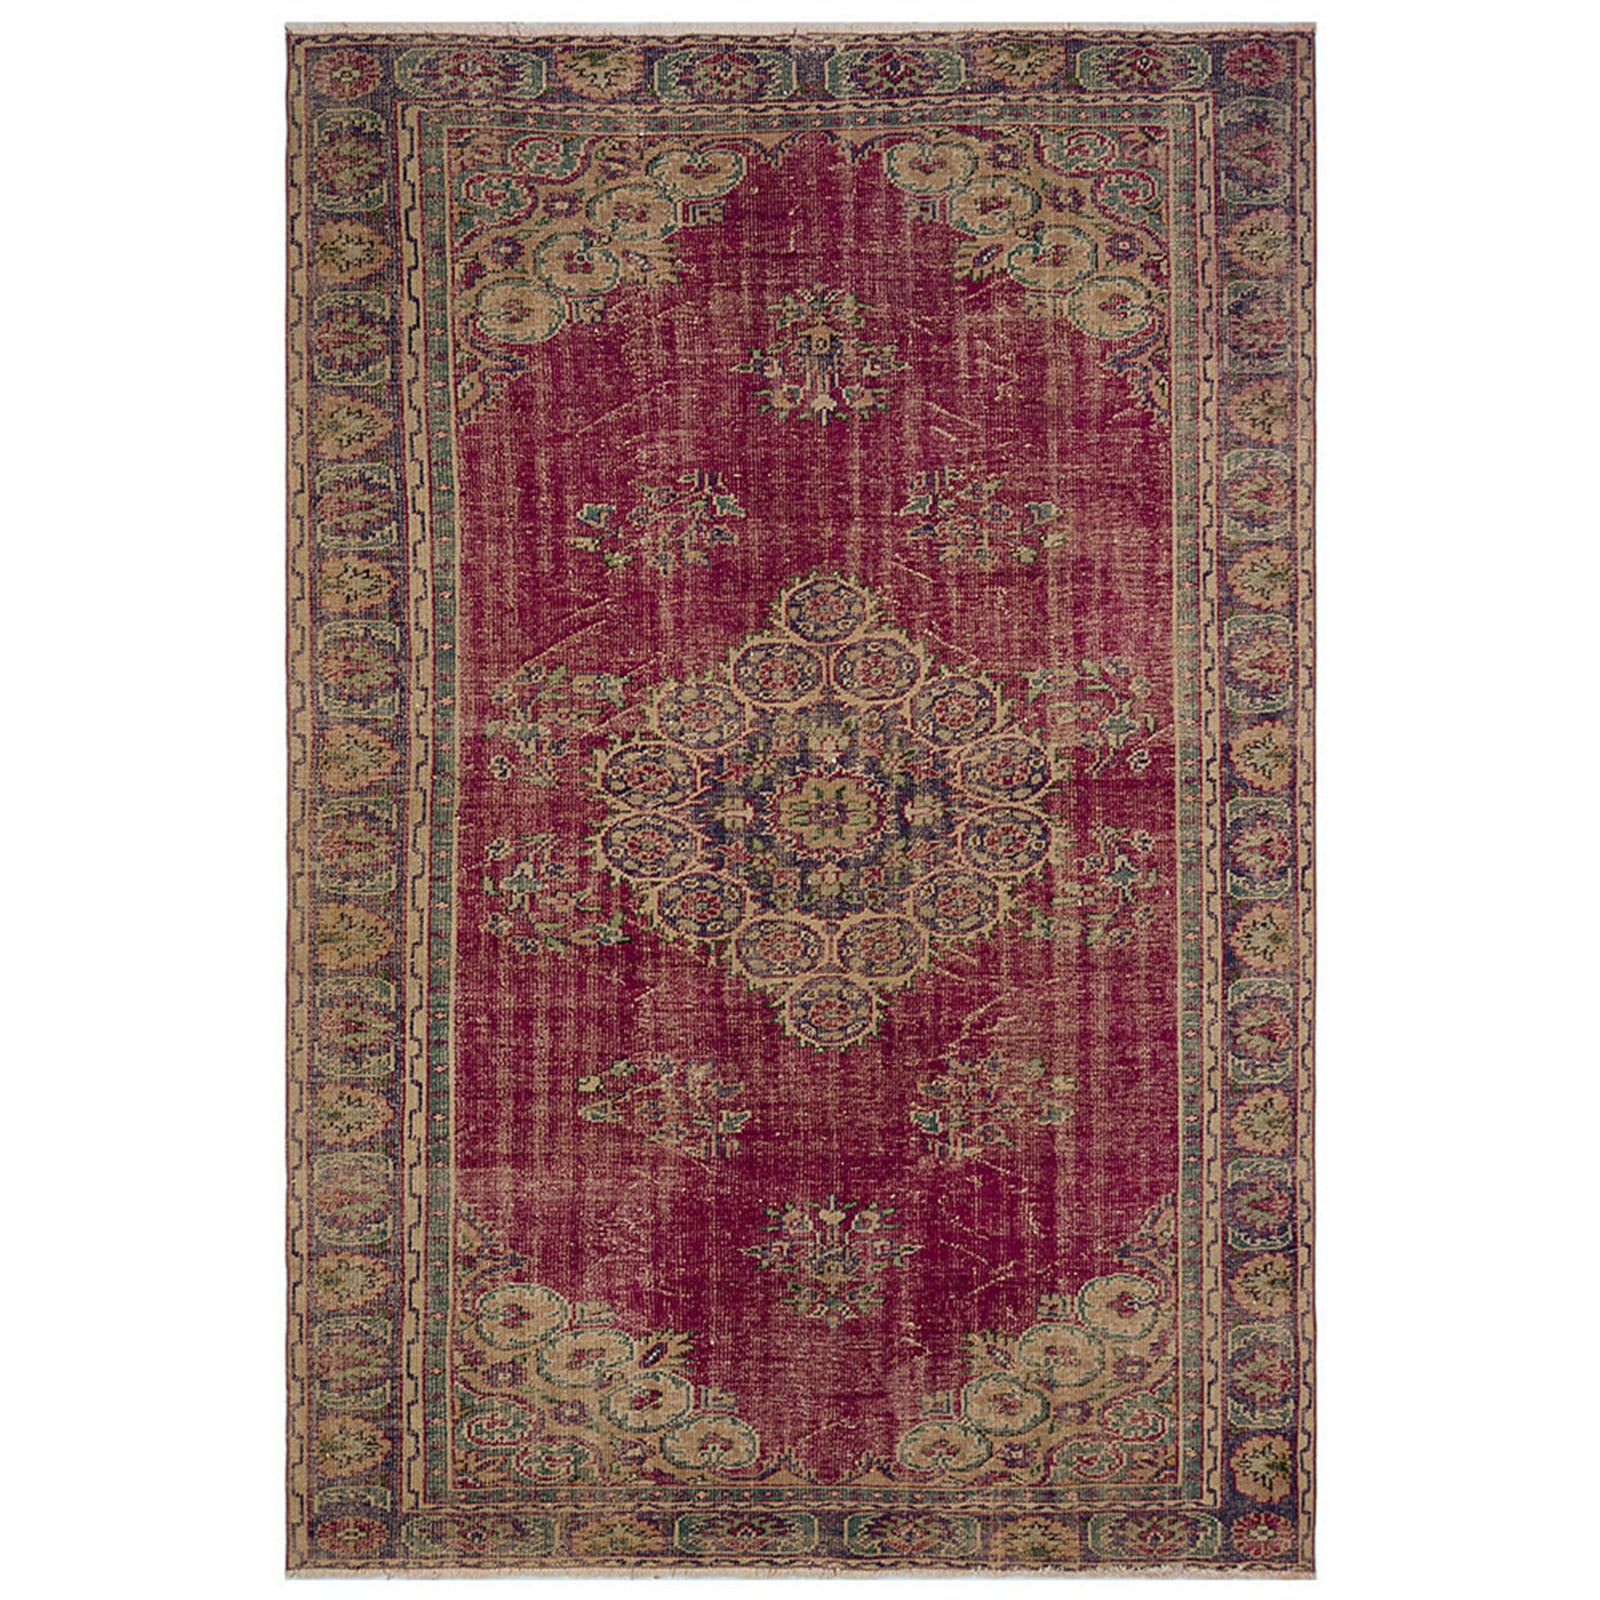 Hali 204X308  CM Bursa Handmade over dyed rug  2017 -  204*308 سجاده بورصة صناعة يدوية على بساط مصبوغ - Shop Online Furniture and Home Decor Store in Dubai, UAE at ebarza